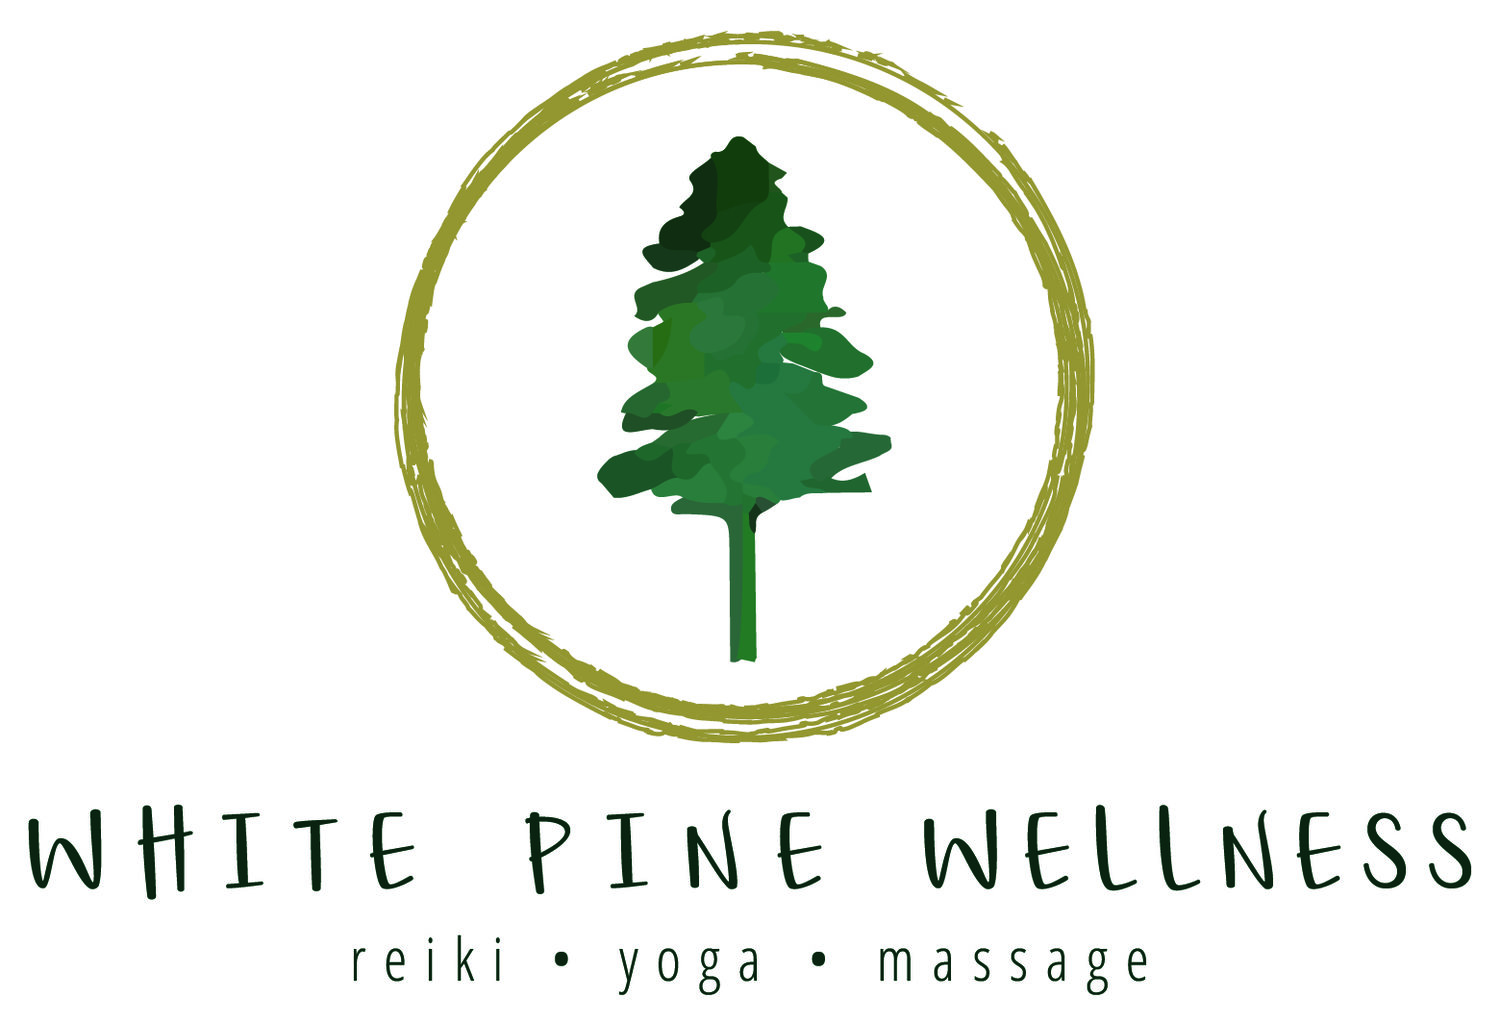 White Pine Wellness